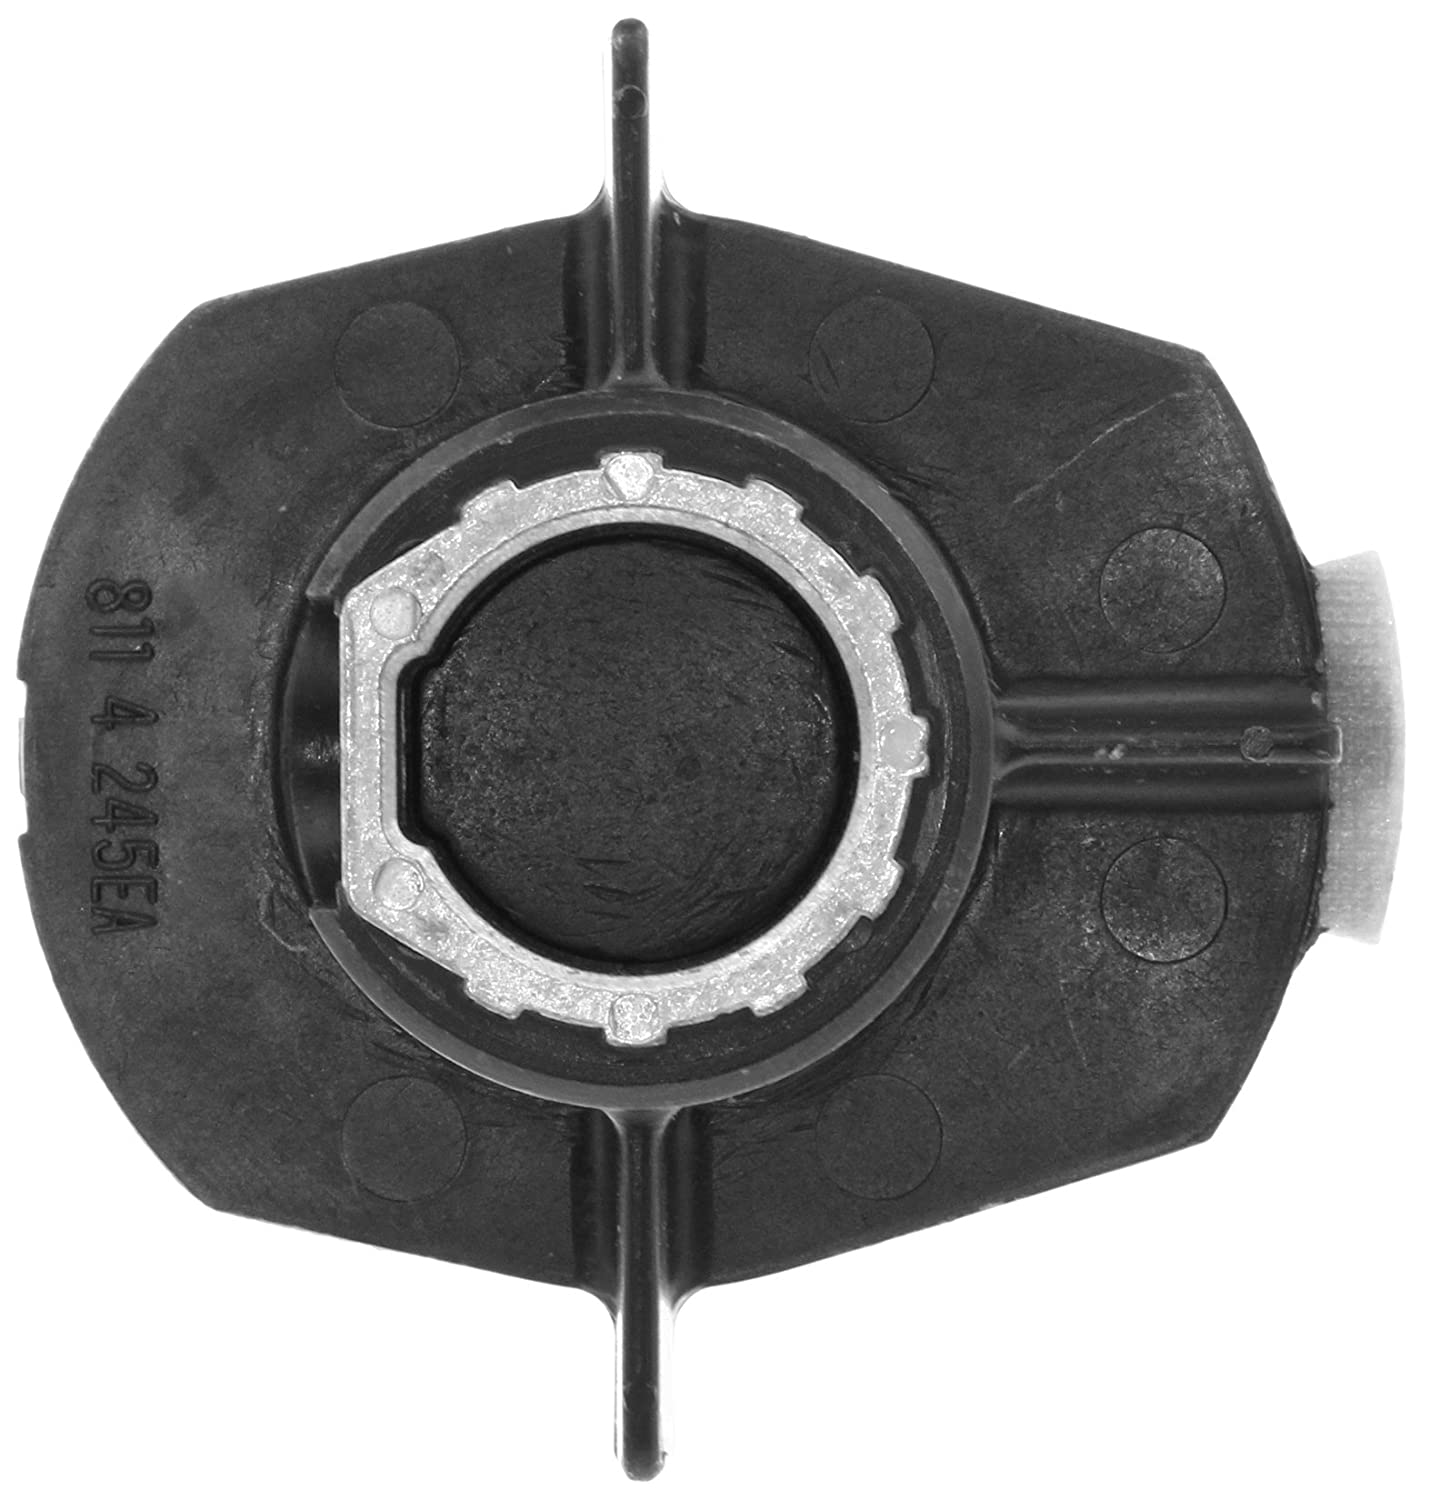 WVE by NTK 4R1185 Distributor Rotor